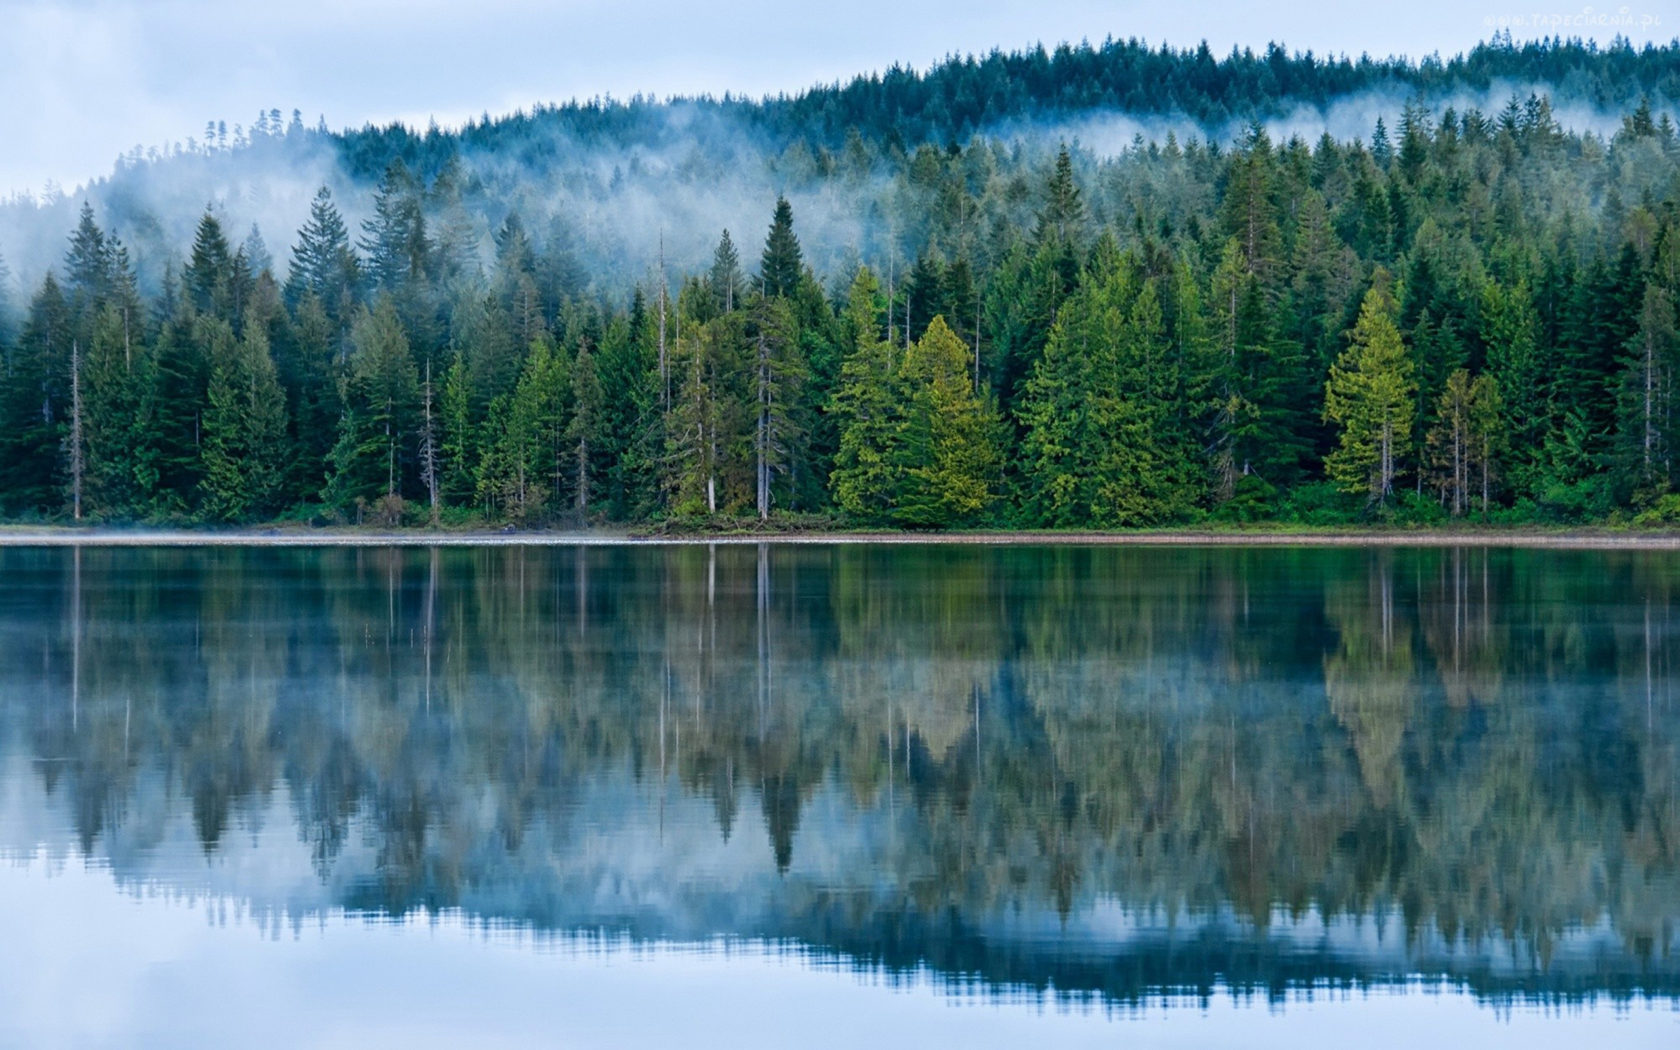 Fall Scenery Wallpapers Free Reflection On The Lake Pine Forest Fog Hd Desktop